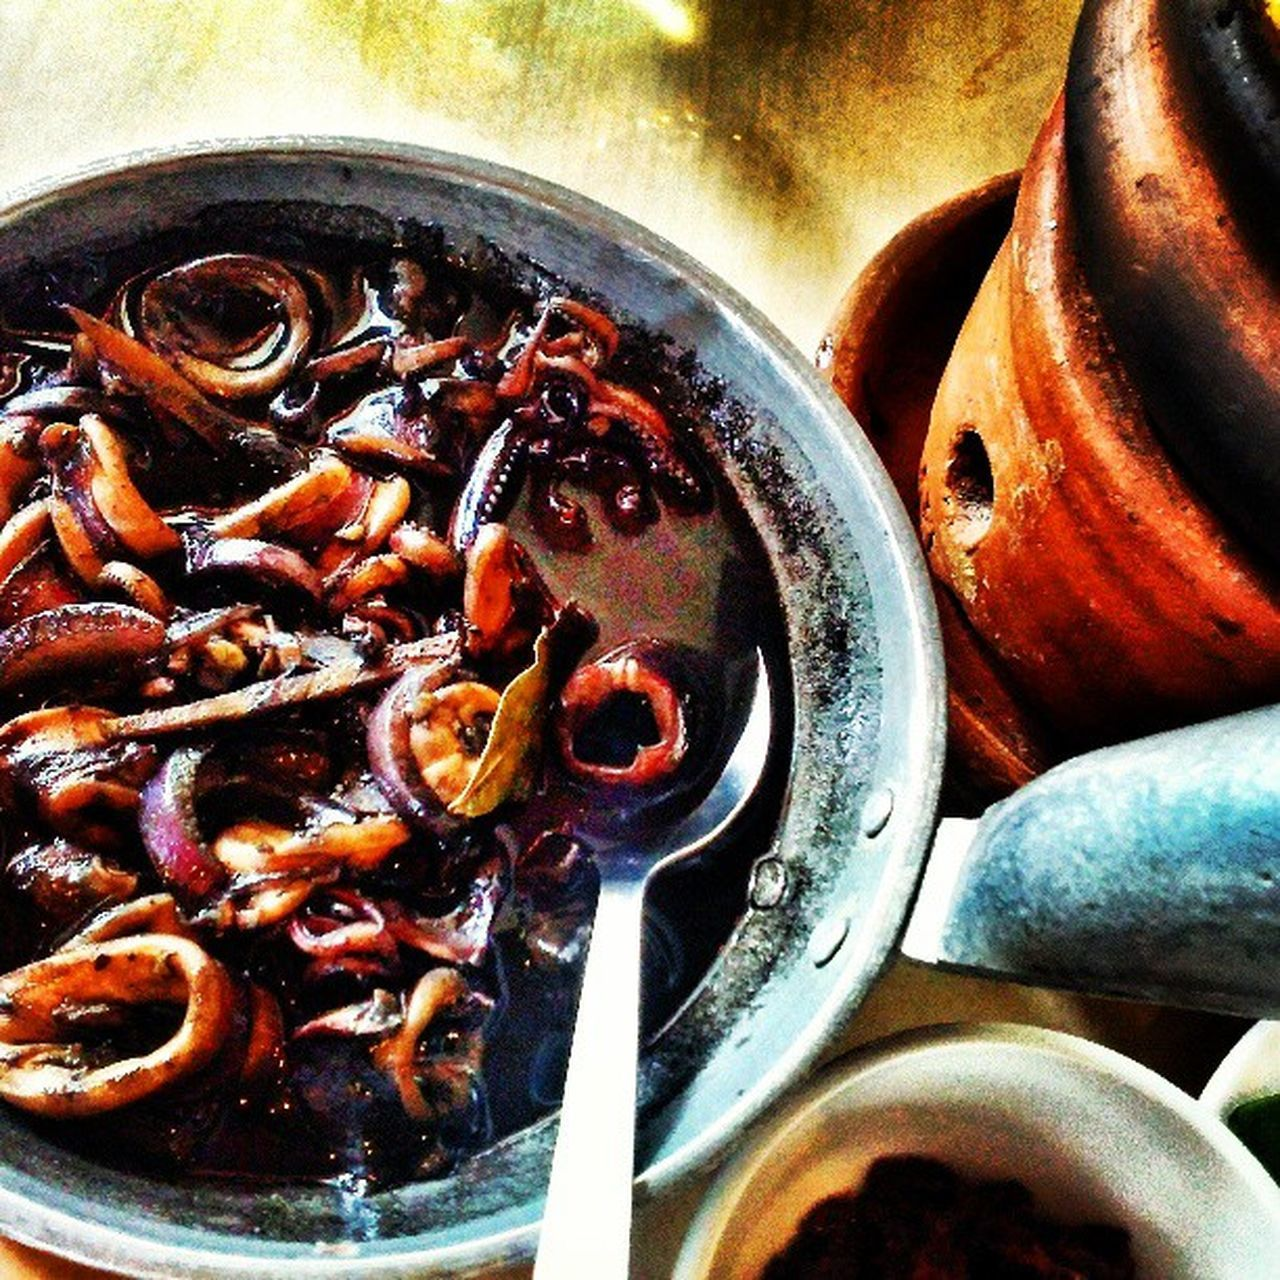 Adobong Pusit... It's Truly A Lot Yummier In The Philippines! at Barrio Fiesta BarrioFiesta Flipcuisine Philippines